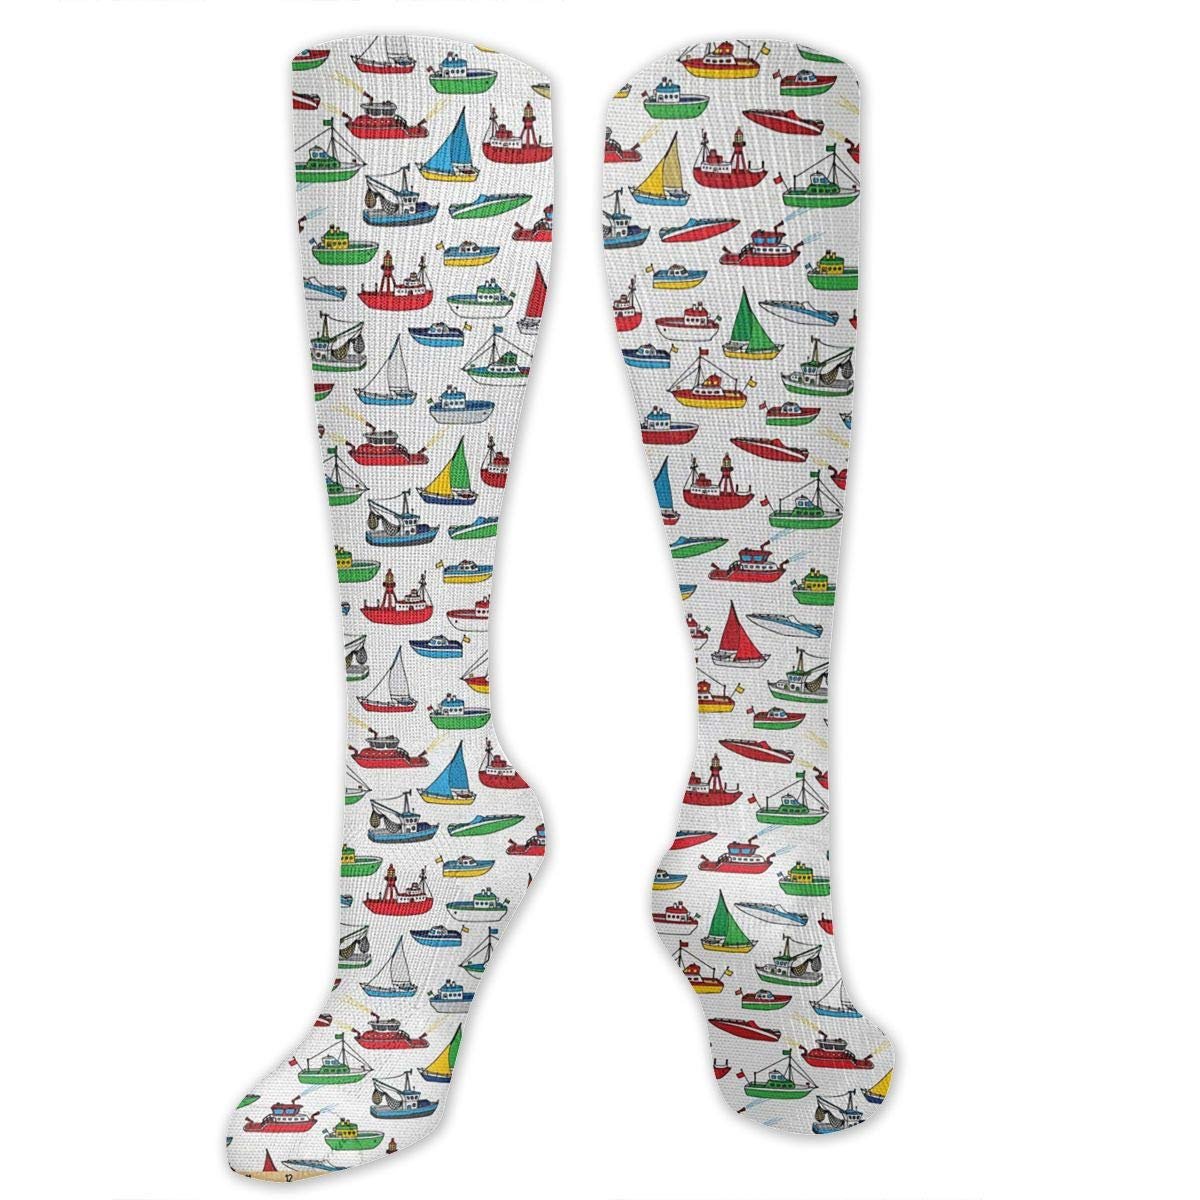 Chanwazibibiliu Bunch of Colorful Vessel Speedboat Mens Colorful Dress Socks Funky Men Multicolored Pattern Fashionable Fun Crew Cotton Socks